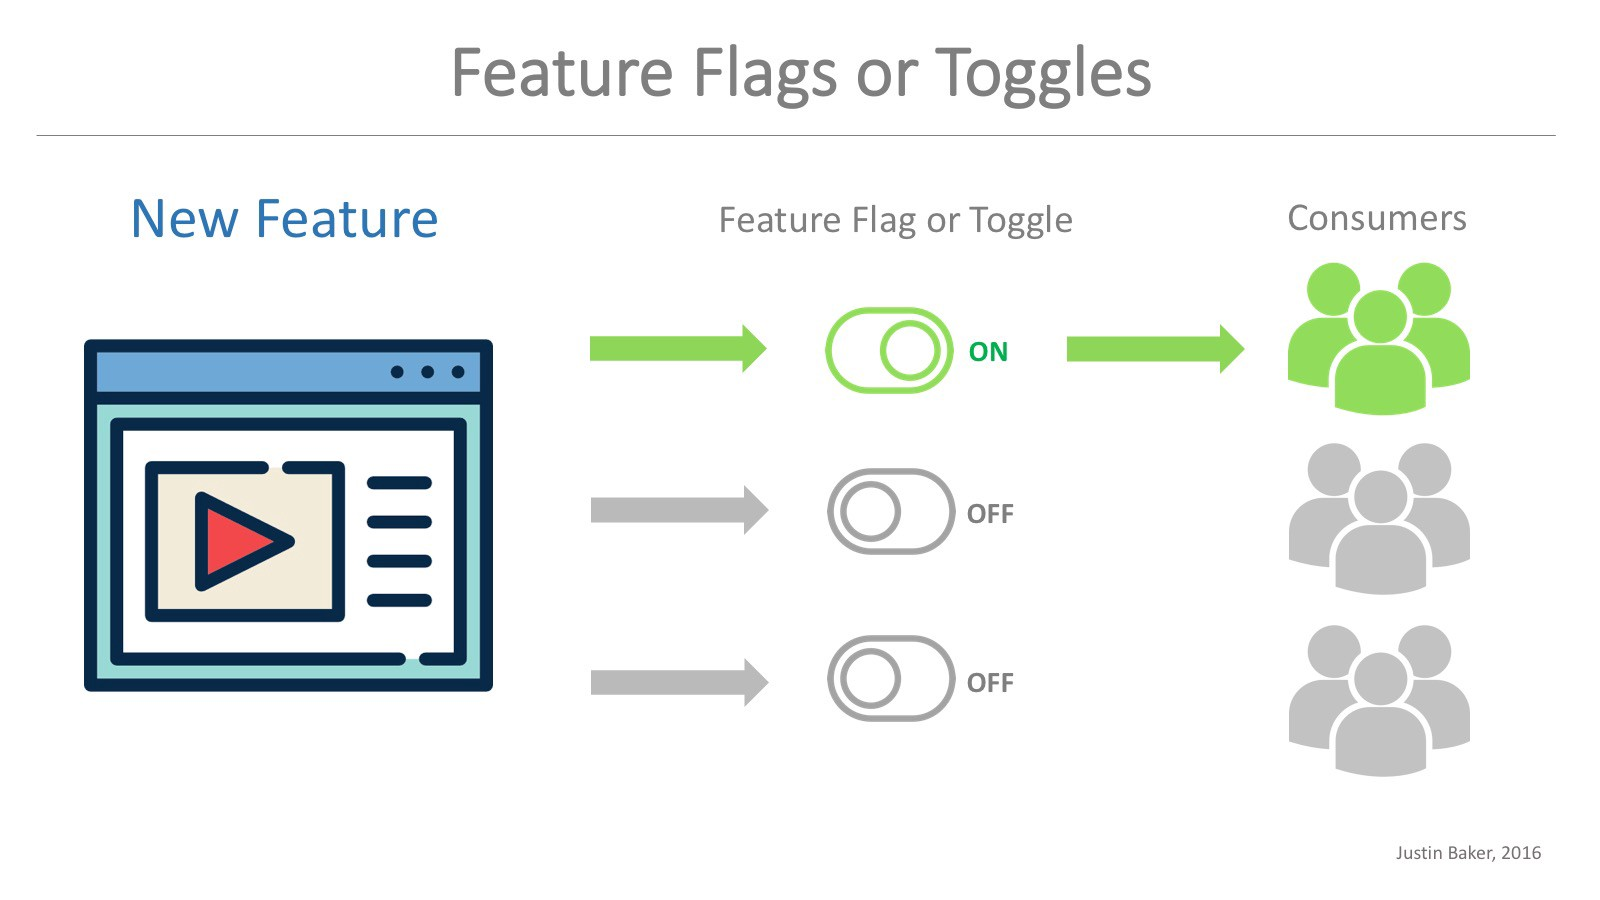 /feature-flag-driven-releases-7a7a5fee6ba7 feature image